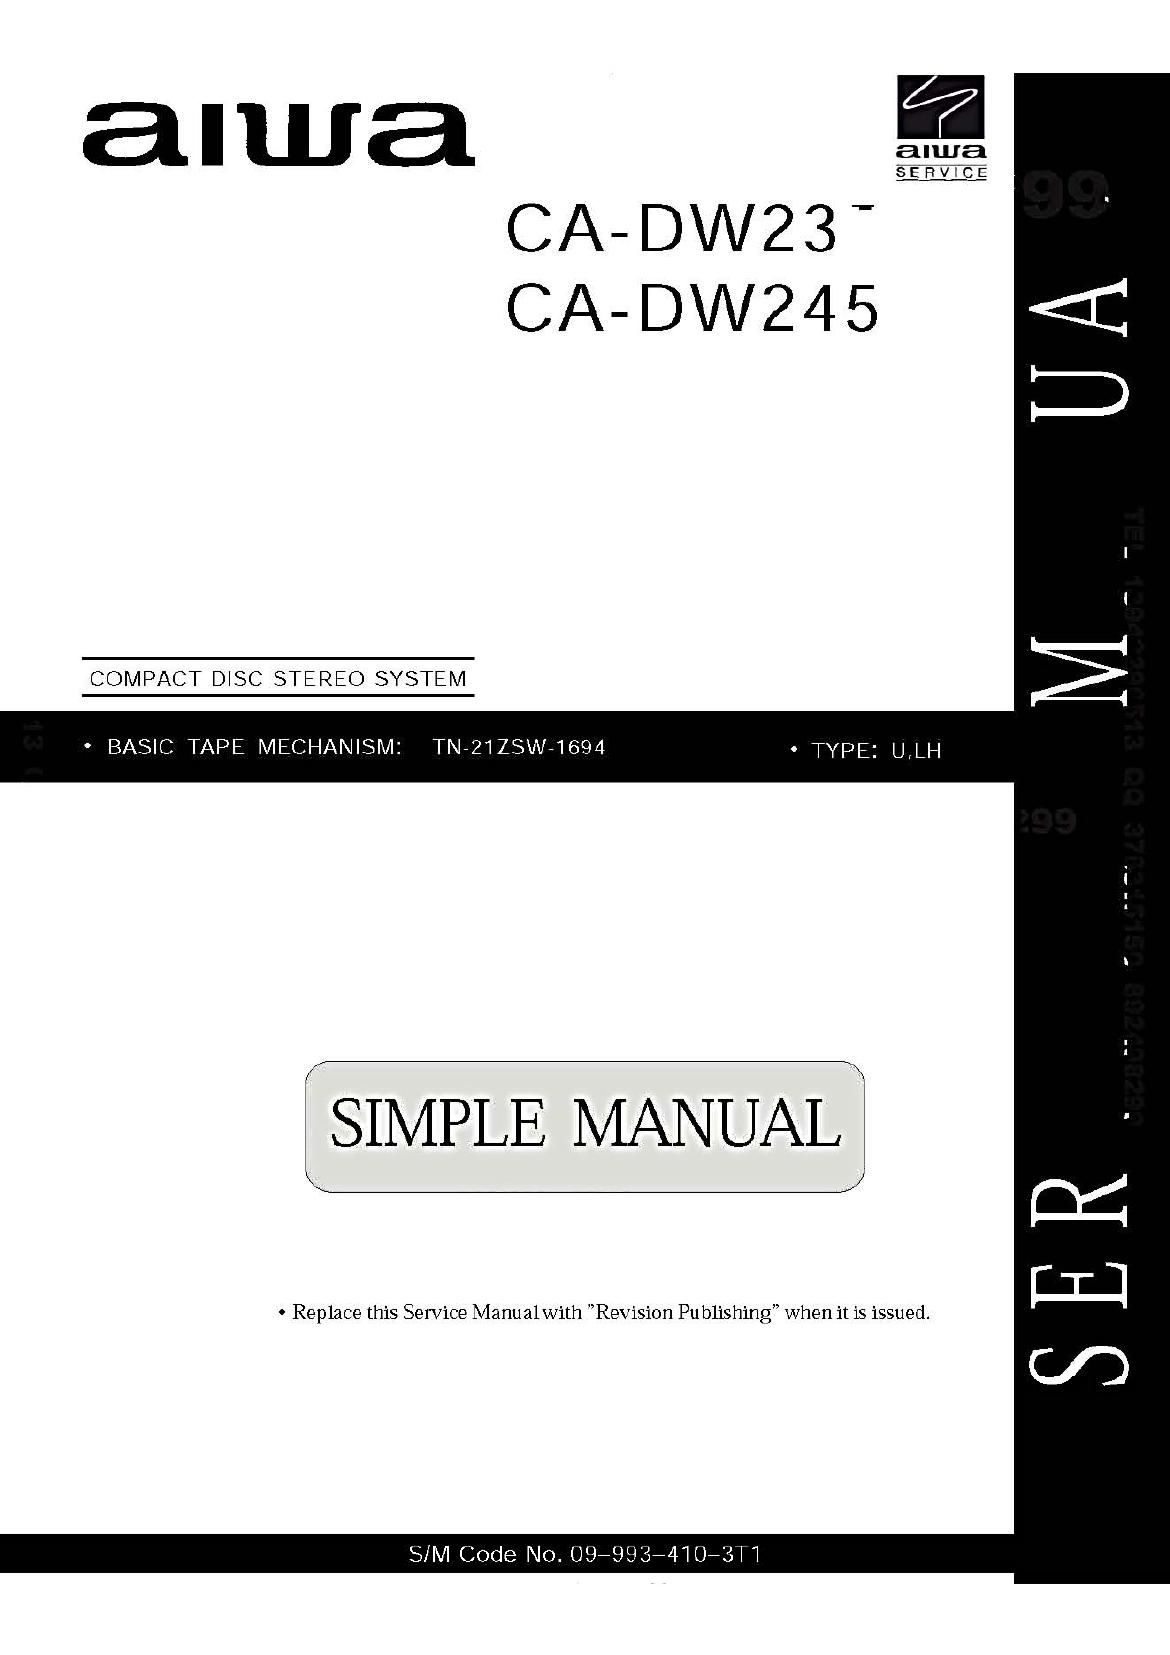 Aiwa CA DW245 Service Manual